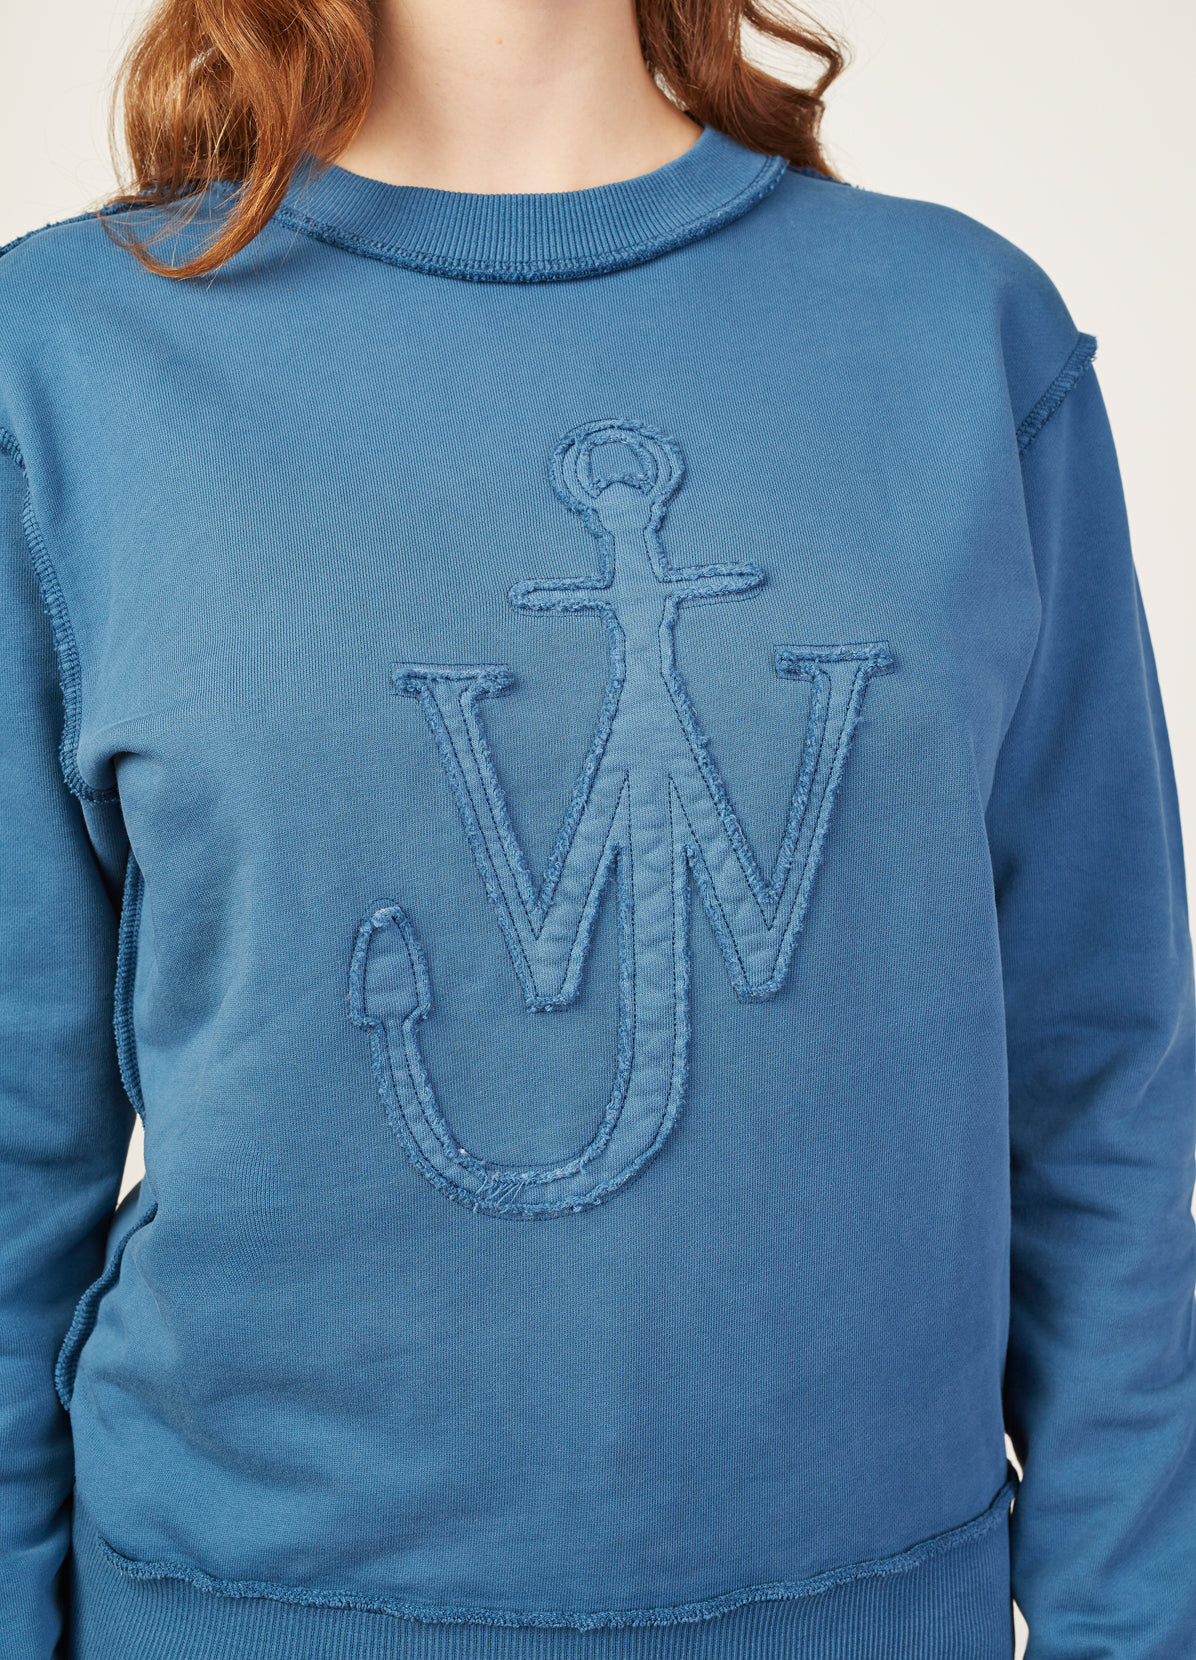 ANCHOR LOGO SWEATSHIRT